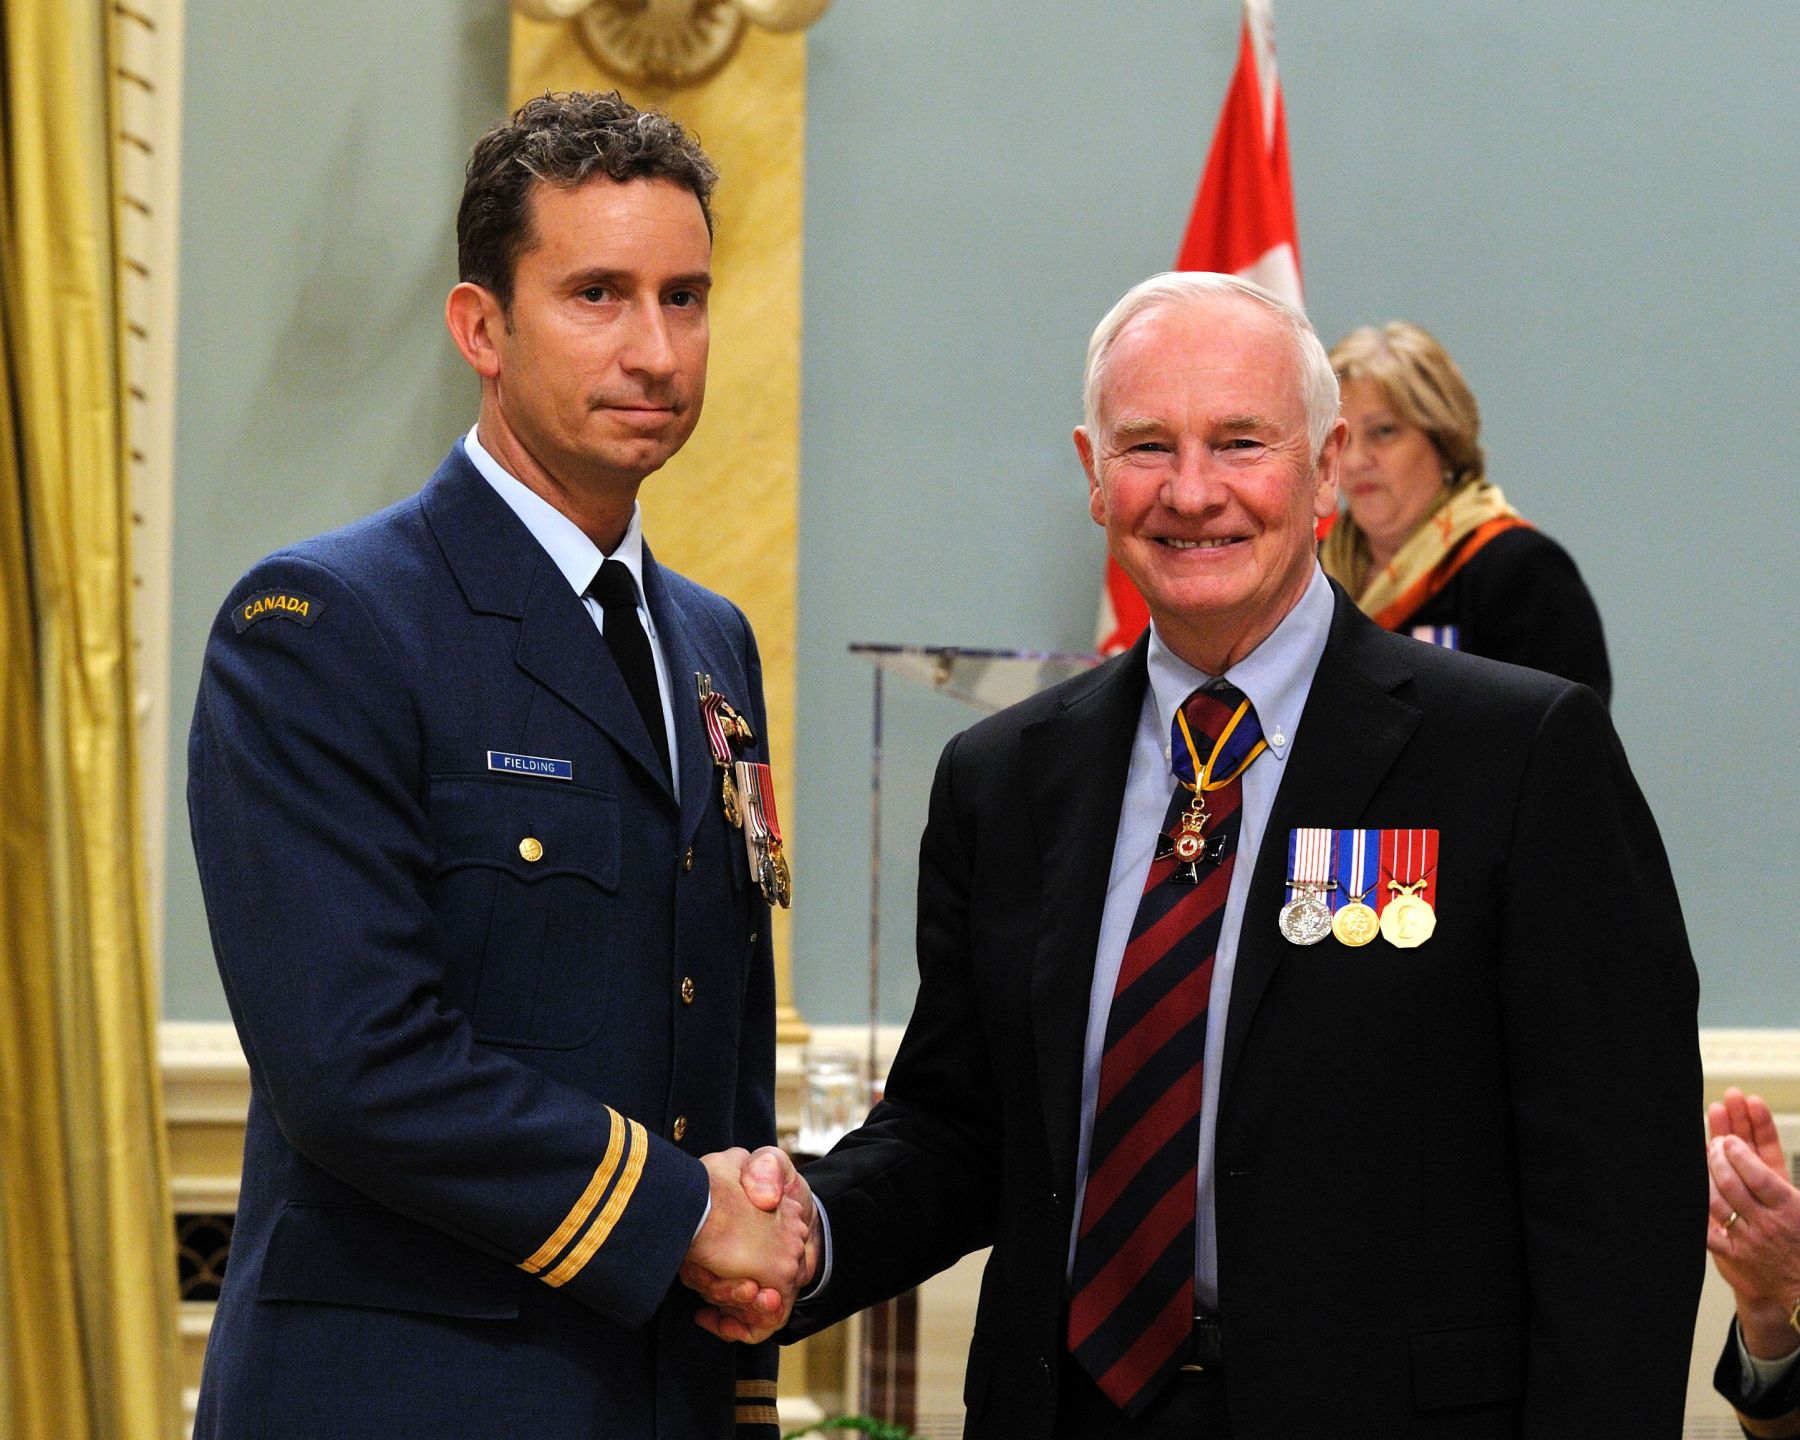 Captain William Todd Fielding, M.M.V., C.D., received the Medal of Military Valour from His Excellency. On August 5, 2010, Captain Fielding's Chinook helicopter was struck by enemy fire, in Panjwaji, Afghanistan, causing the fuel tank to explode and rendering the aircraft nearly inoperable. With the helicopter in flames and the cockpit rapidly filling with smoke, Captain Fielding made the time-critical decision to land in enemy territory rather than fly to a friendly landing zone.  His outstanding courage and devotion to duty allowed him to execute an emergency landing and then lead the evacuation of the burning aircraft. His actions no doubt saved the lives of all crew and passengers that day.